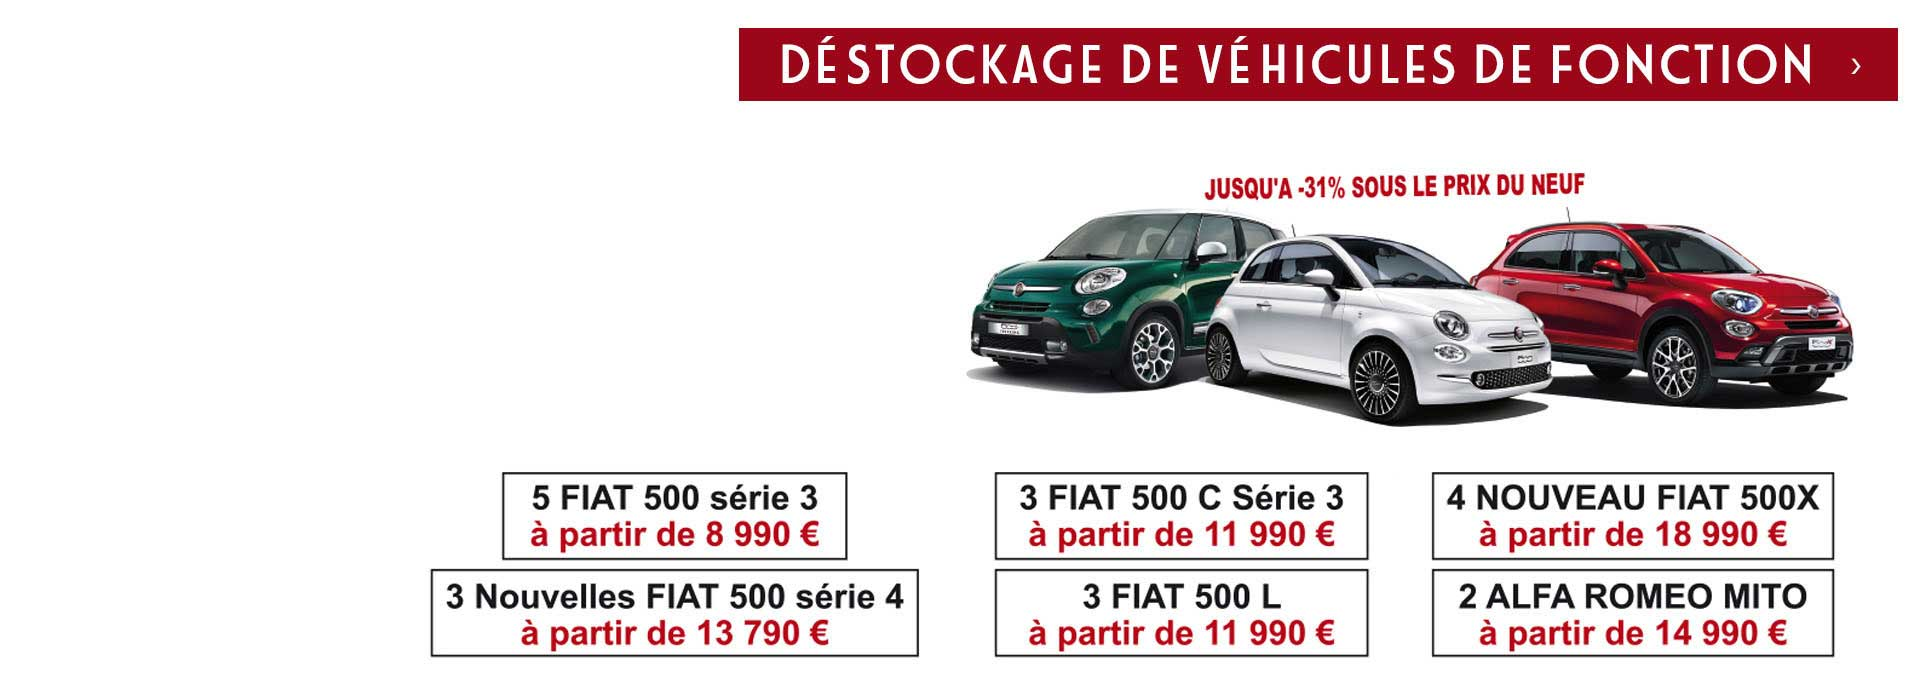 fiat haguenau vente voiture neuve vehicule occasion. Black Bedroom Furniture Sets. Home Design Ideas